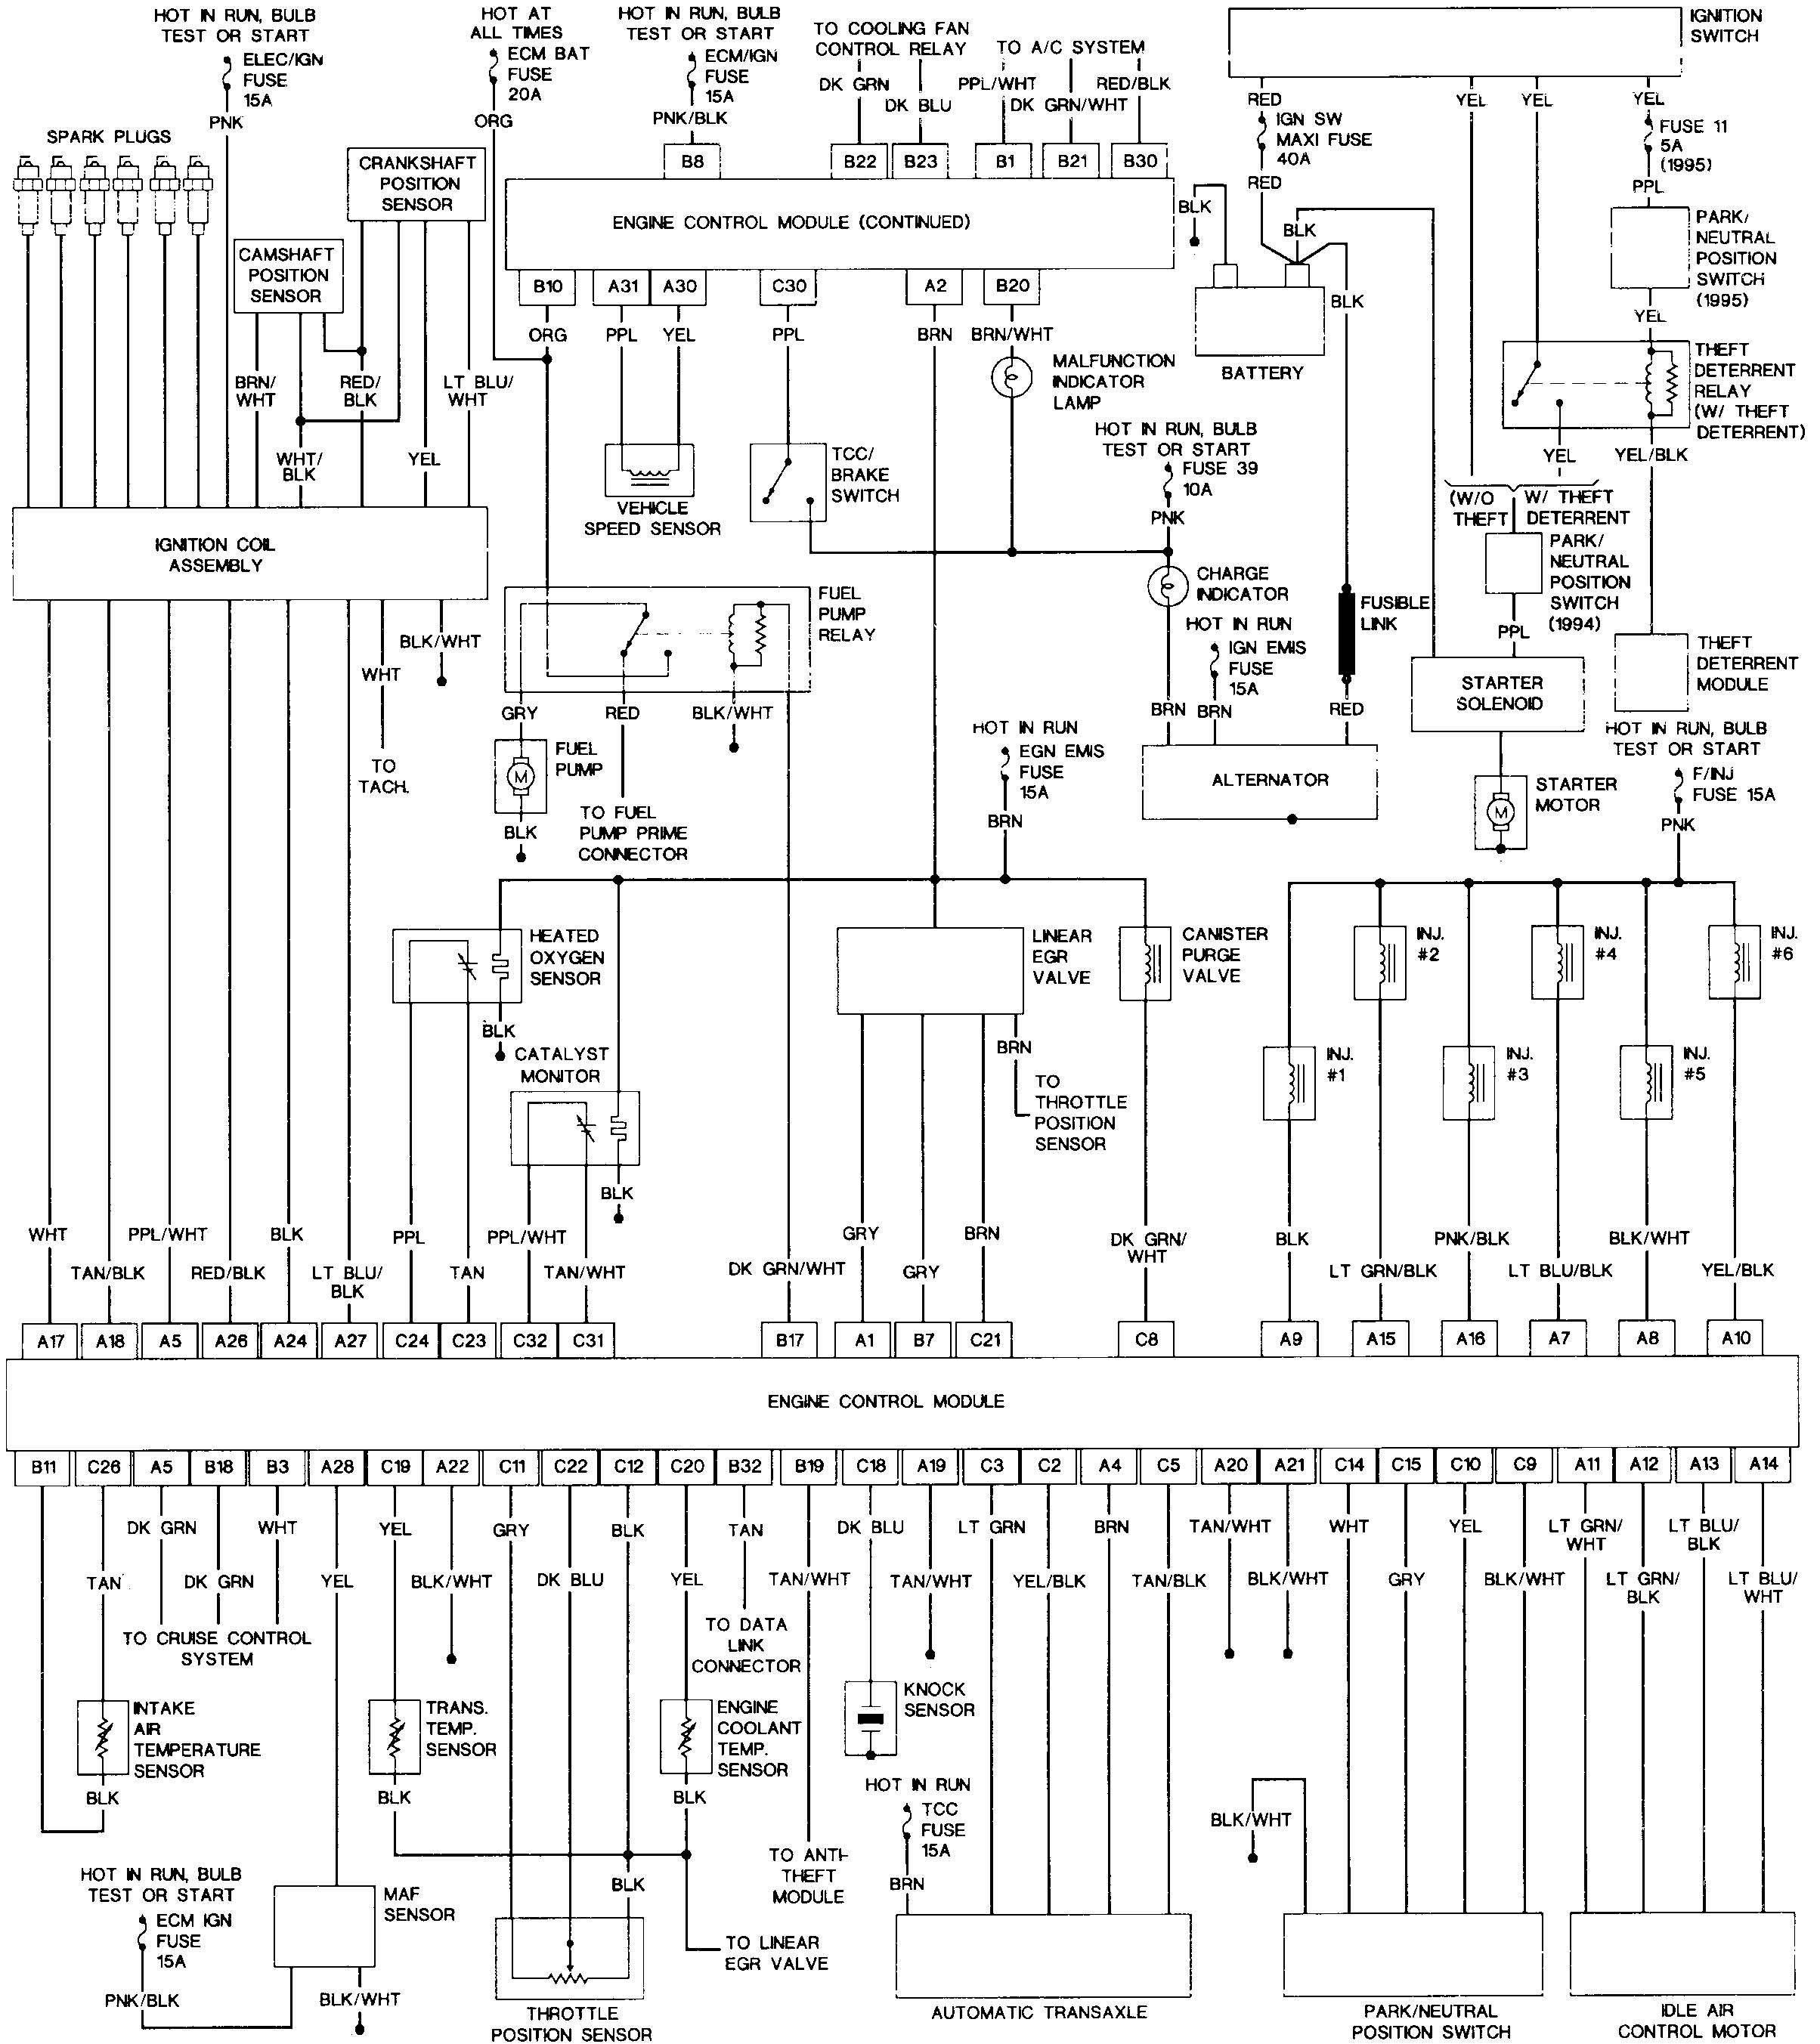 2002 Jeep Grand Cherokee Engine Diagram 2 Unique 2004 Jeep Grand Cherokee Cooling Fan Wiring Diagram Of 2002 Jeep Grand Cherokee Engine Diagram 2 Jeep Grand Cherokee Wiring Diagram Image